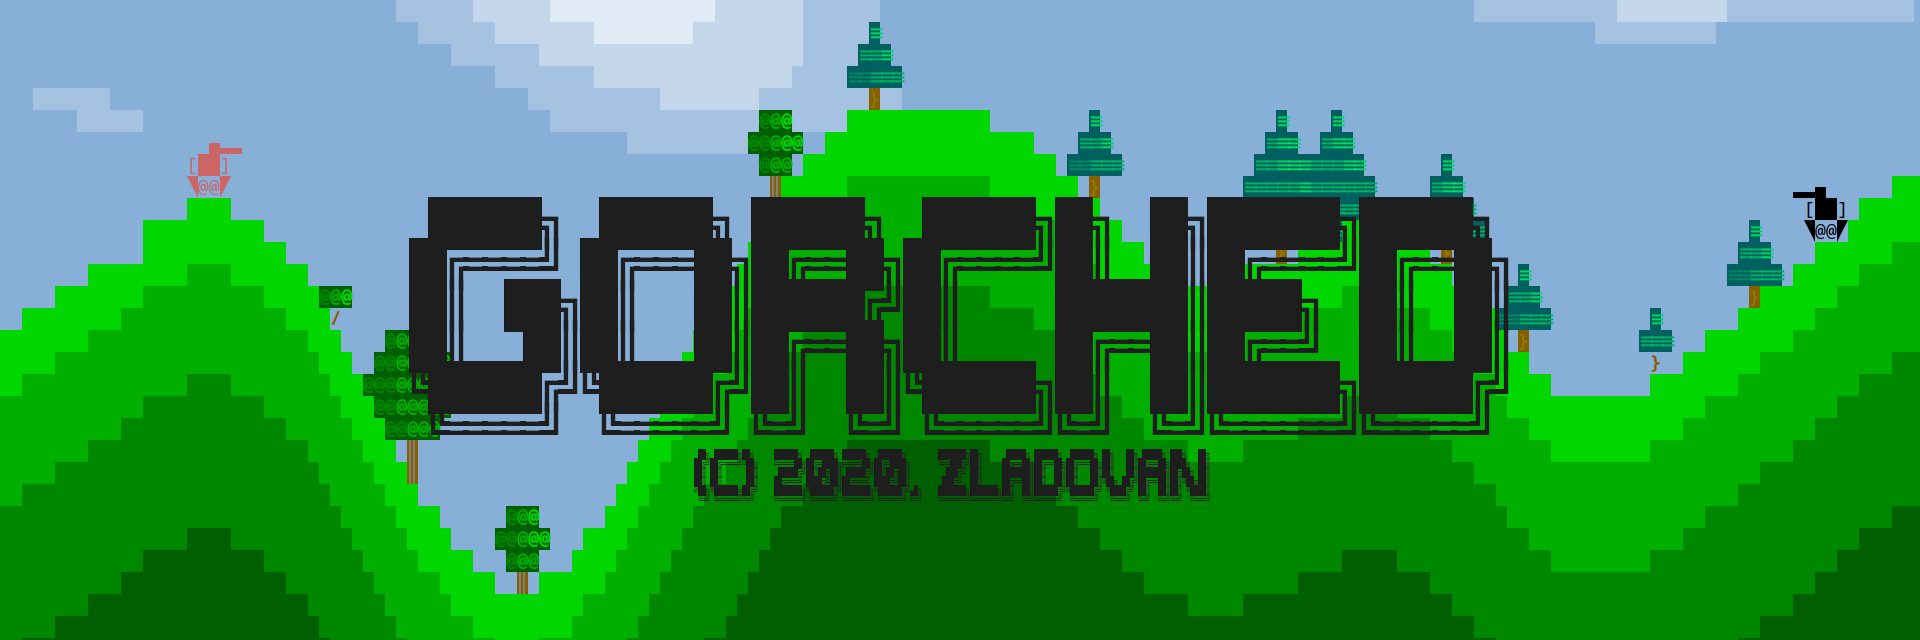 Gorched banner